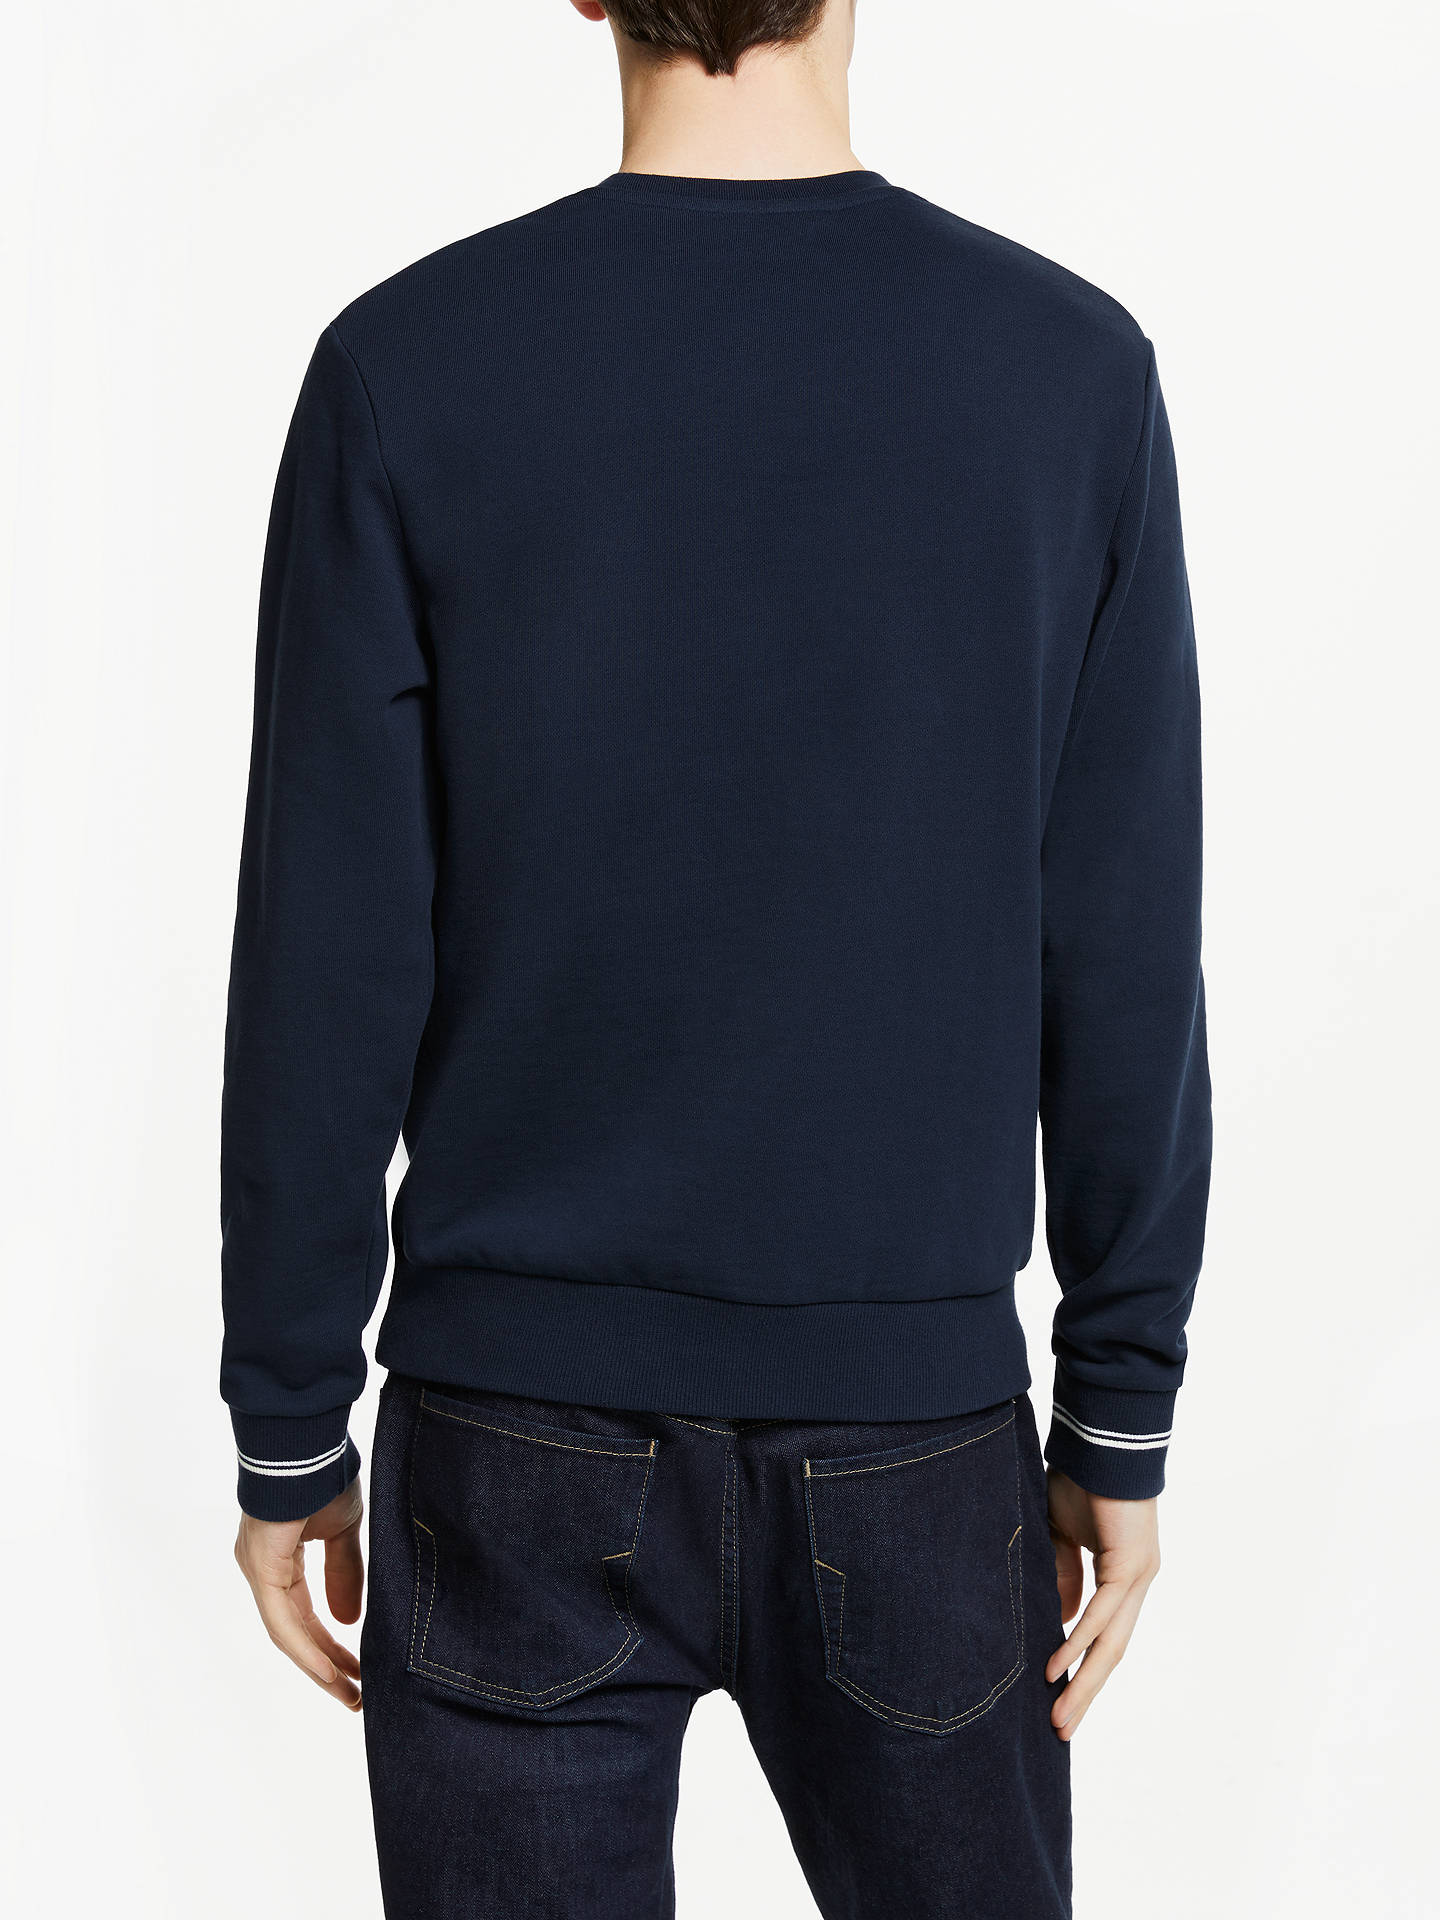 4c7e6e4a1ed Fred Perry Crew Neck Sweatshirt, Washed Navy at John Lewis & Partners